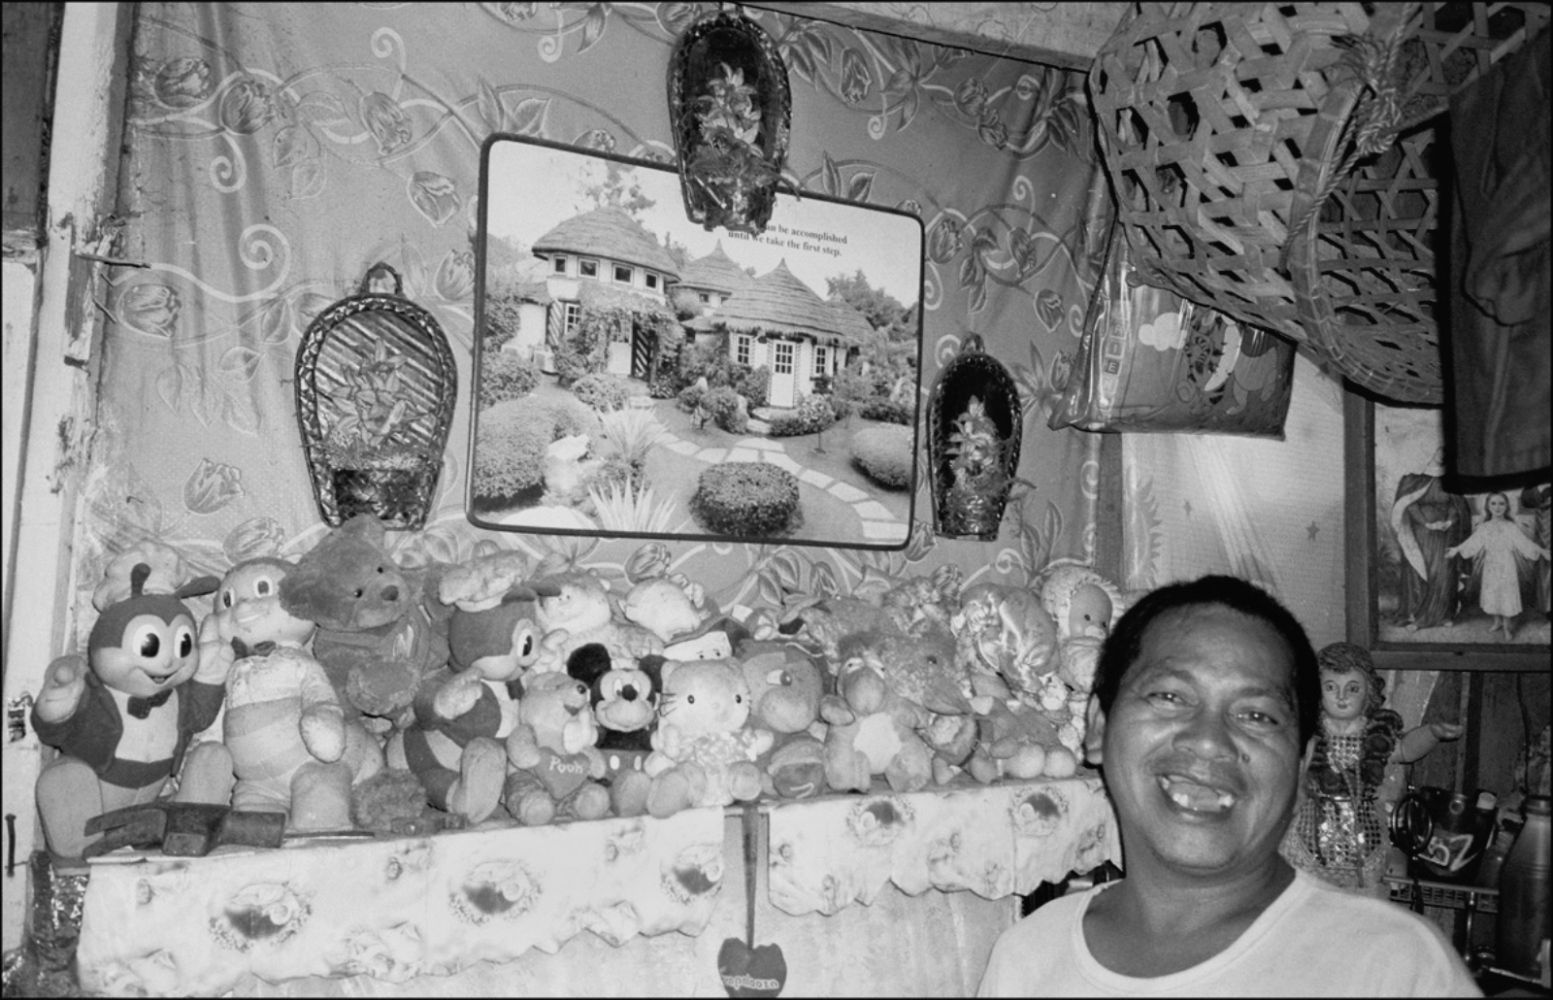 Man with Stuffed Animals Living Underground, South Super Highway, Manila, Philippines, November 2005